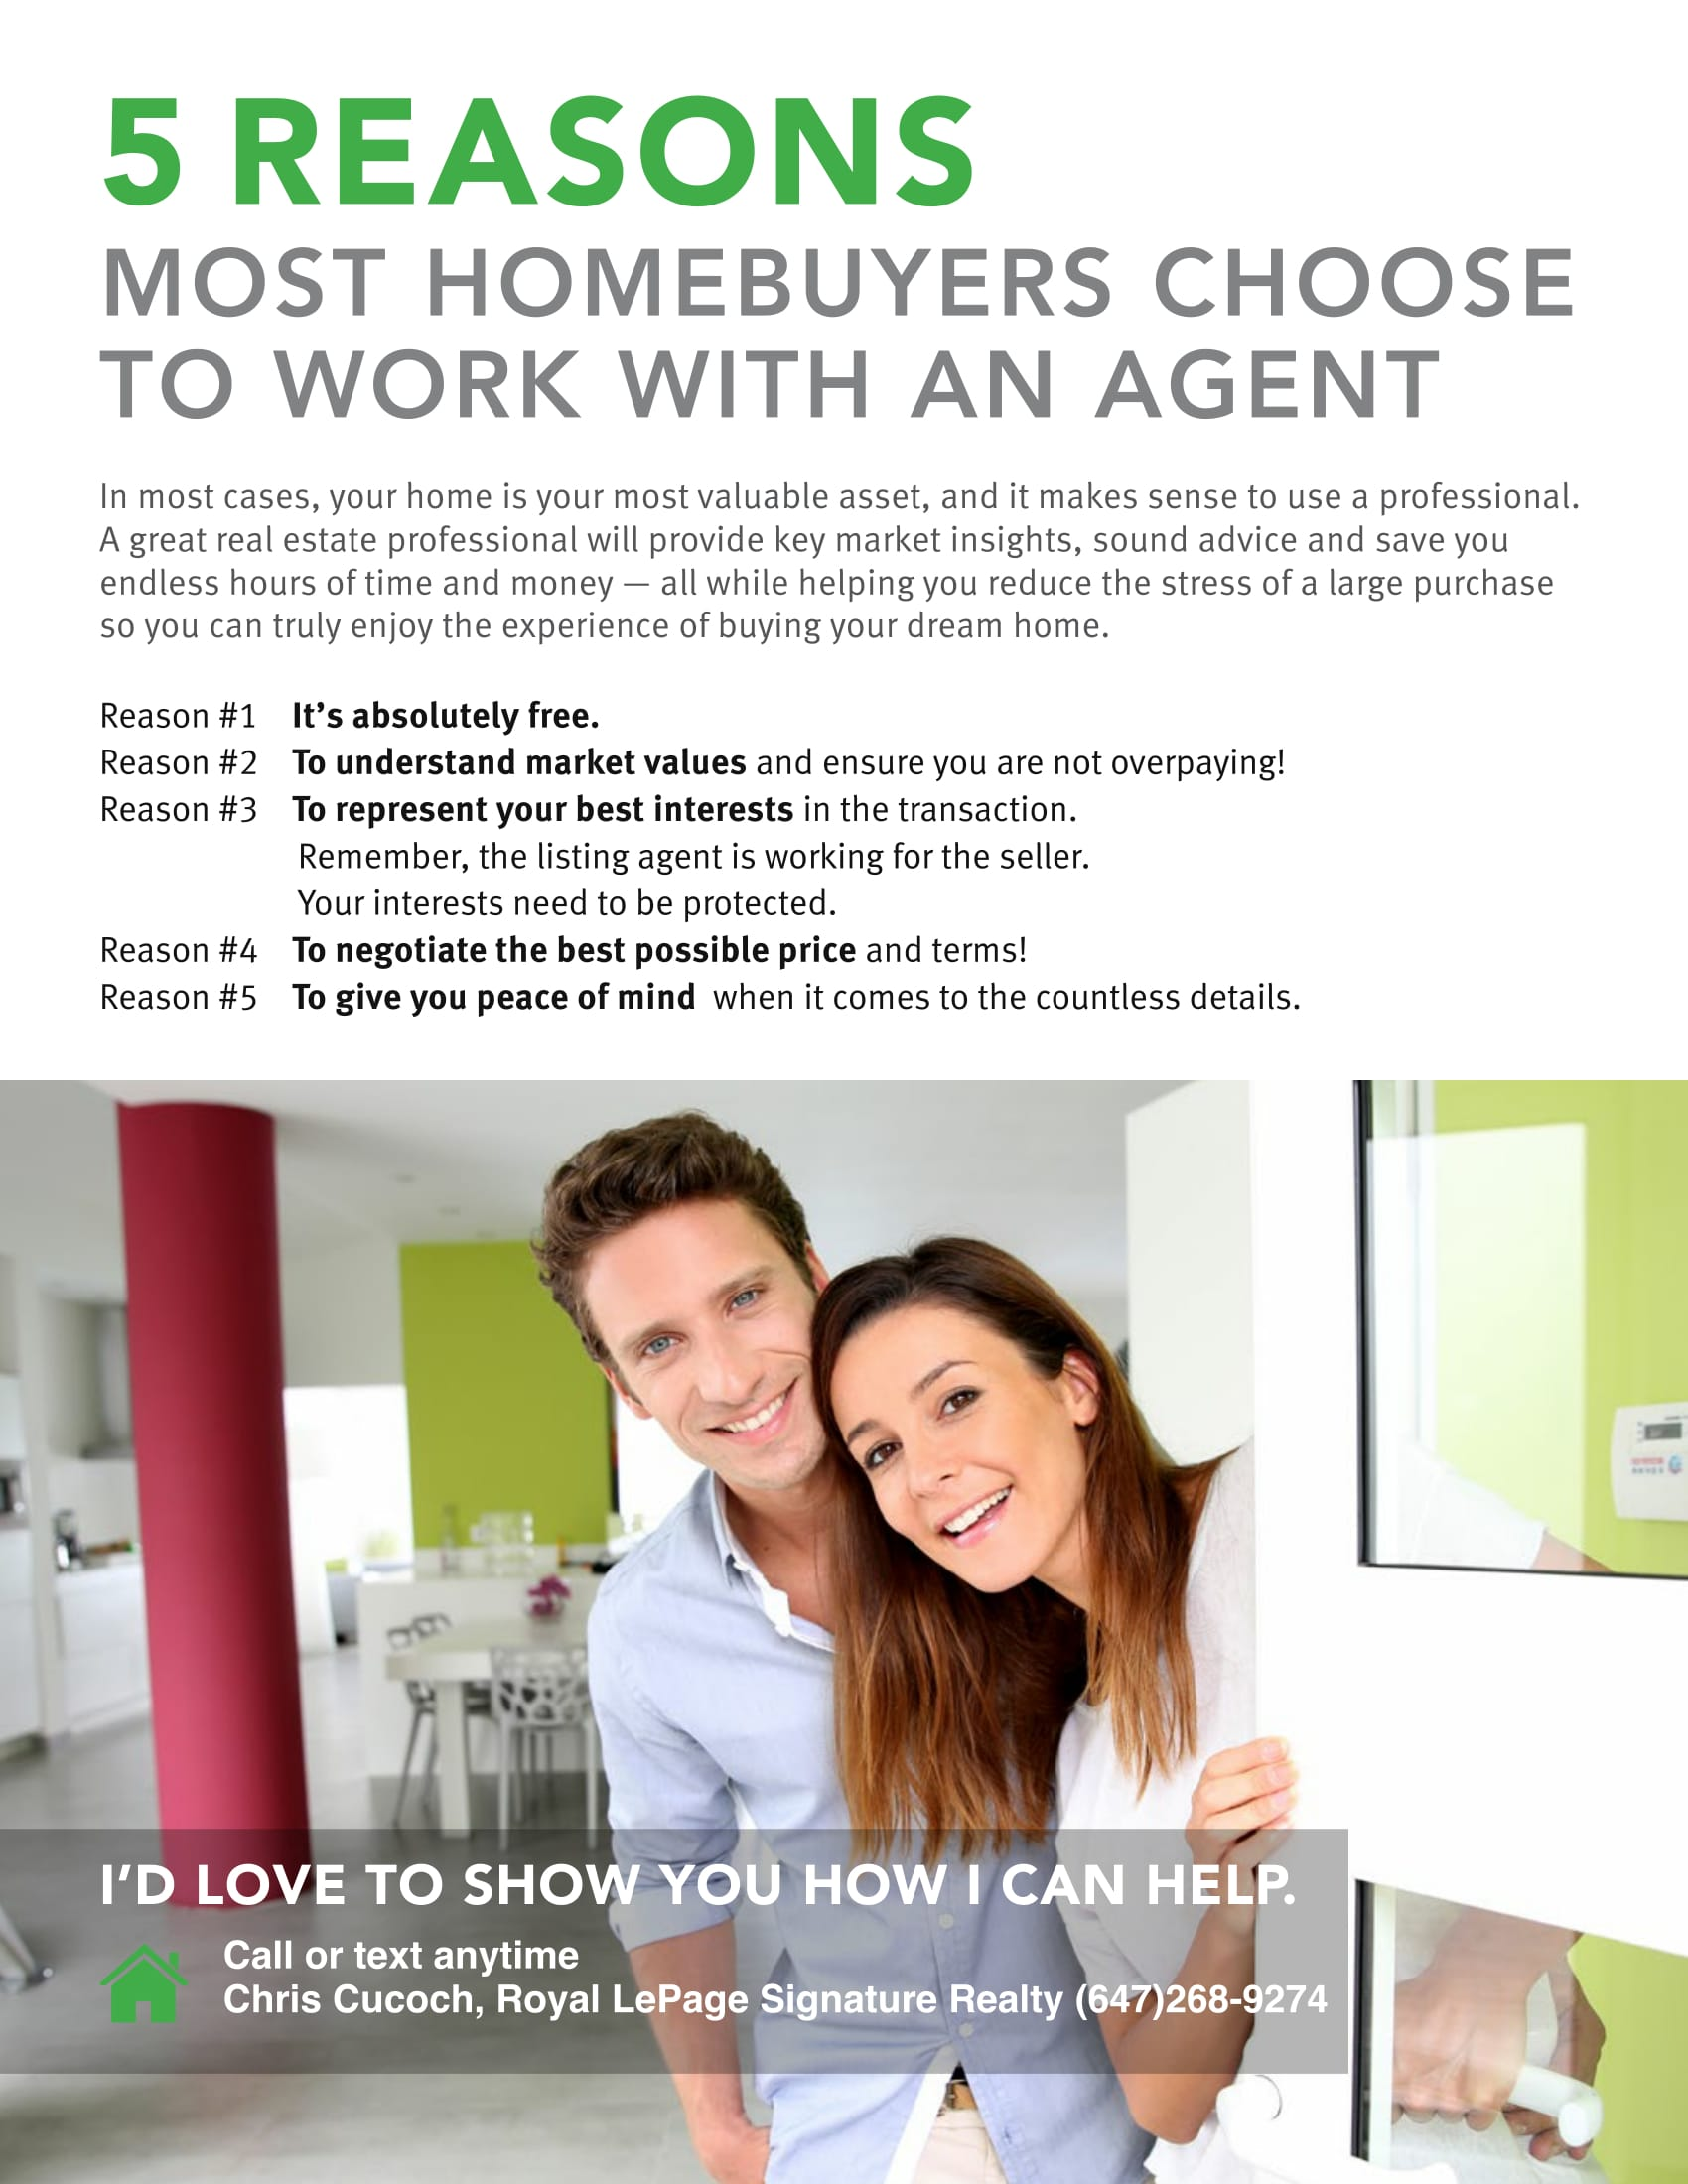 5 Reasons Most Home Buyers Choose to Work With an Agent